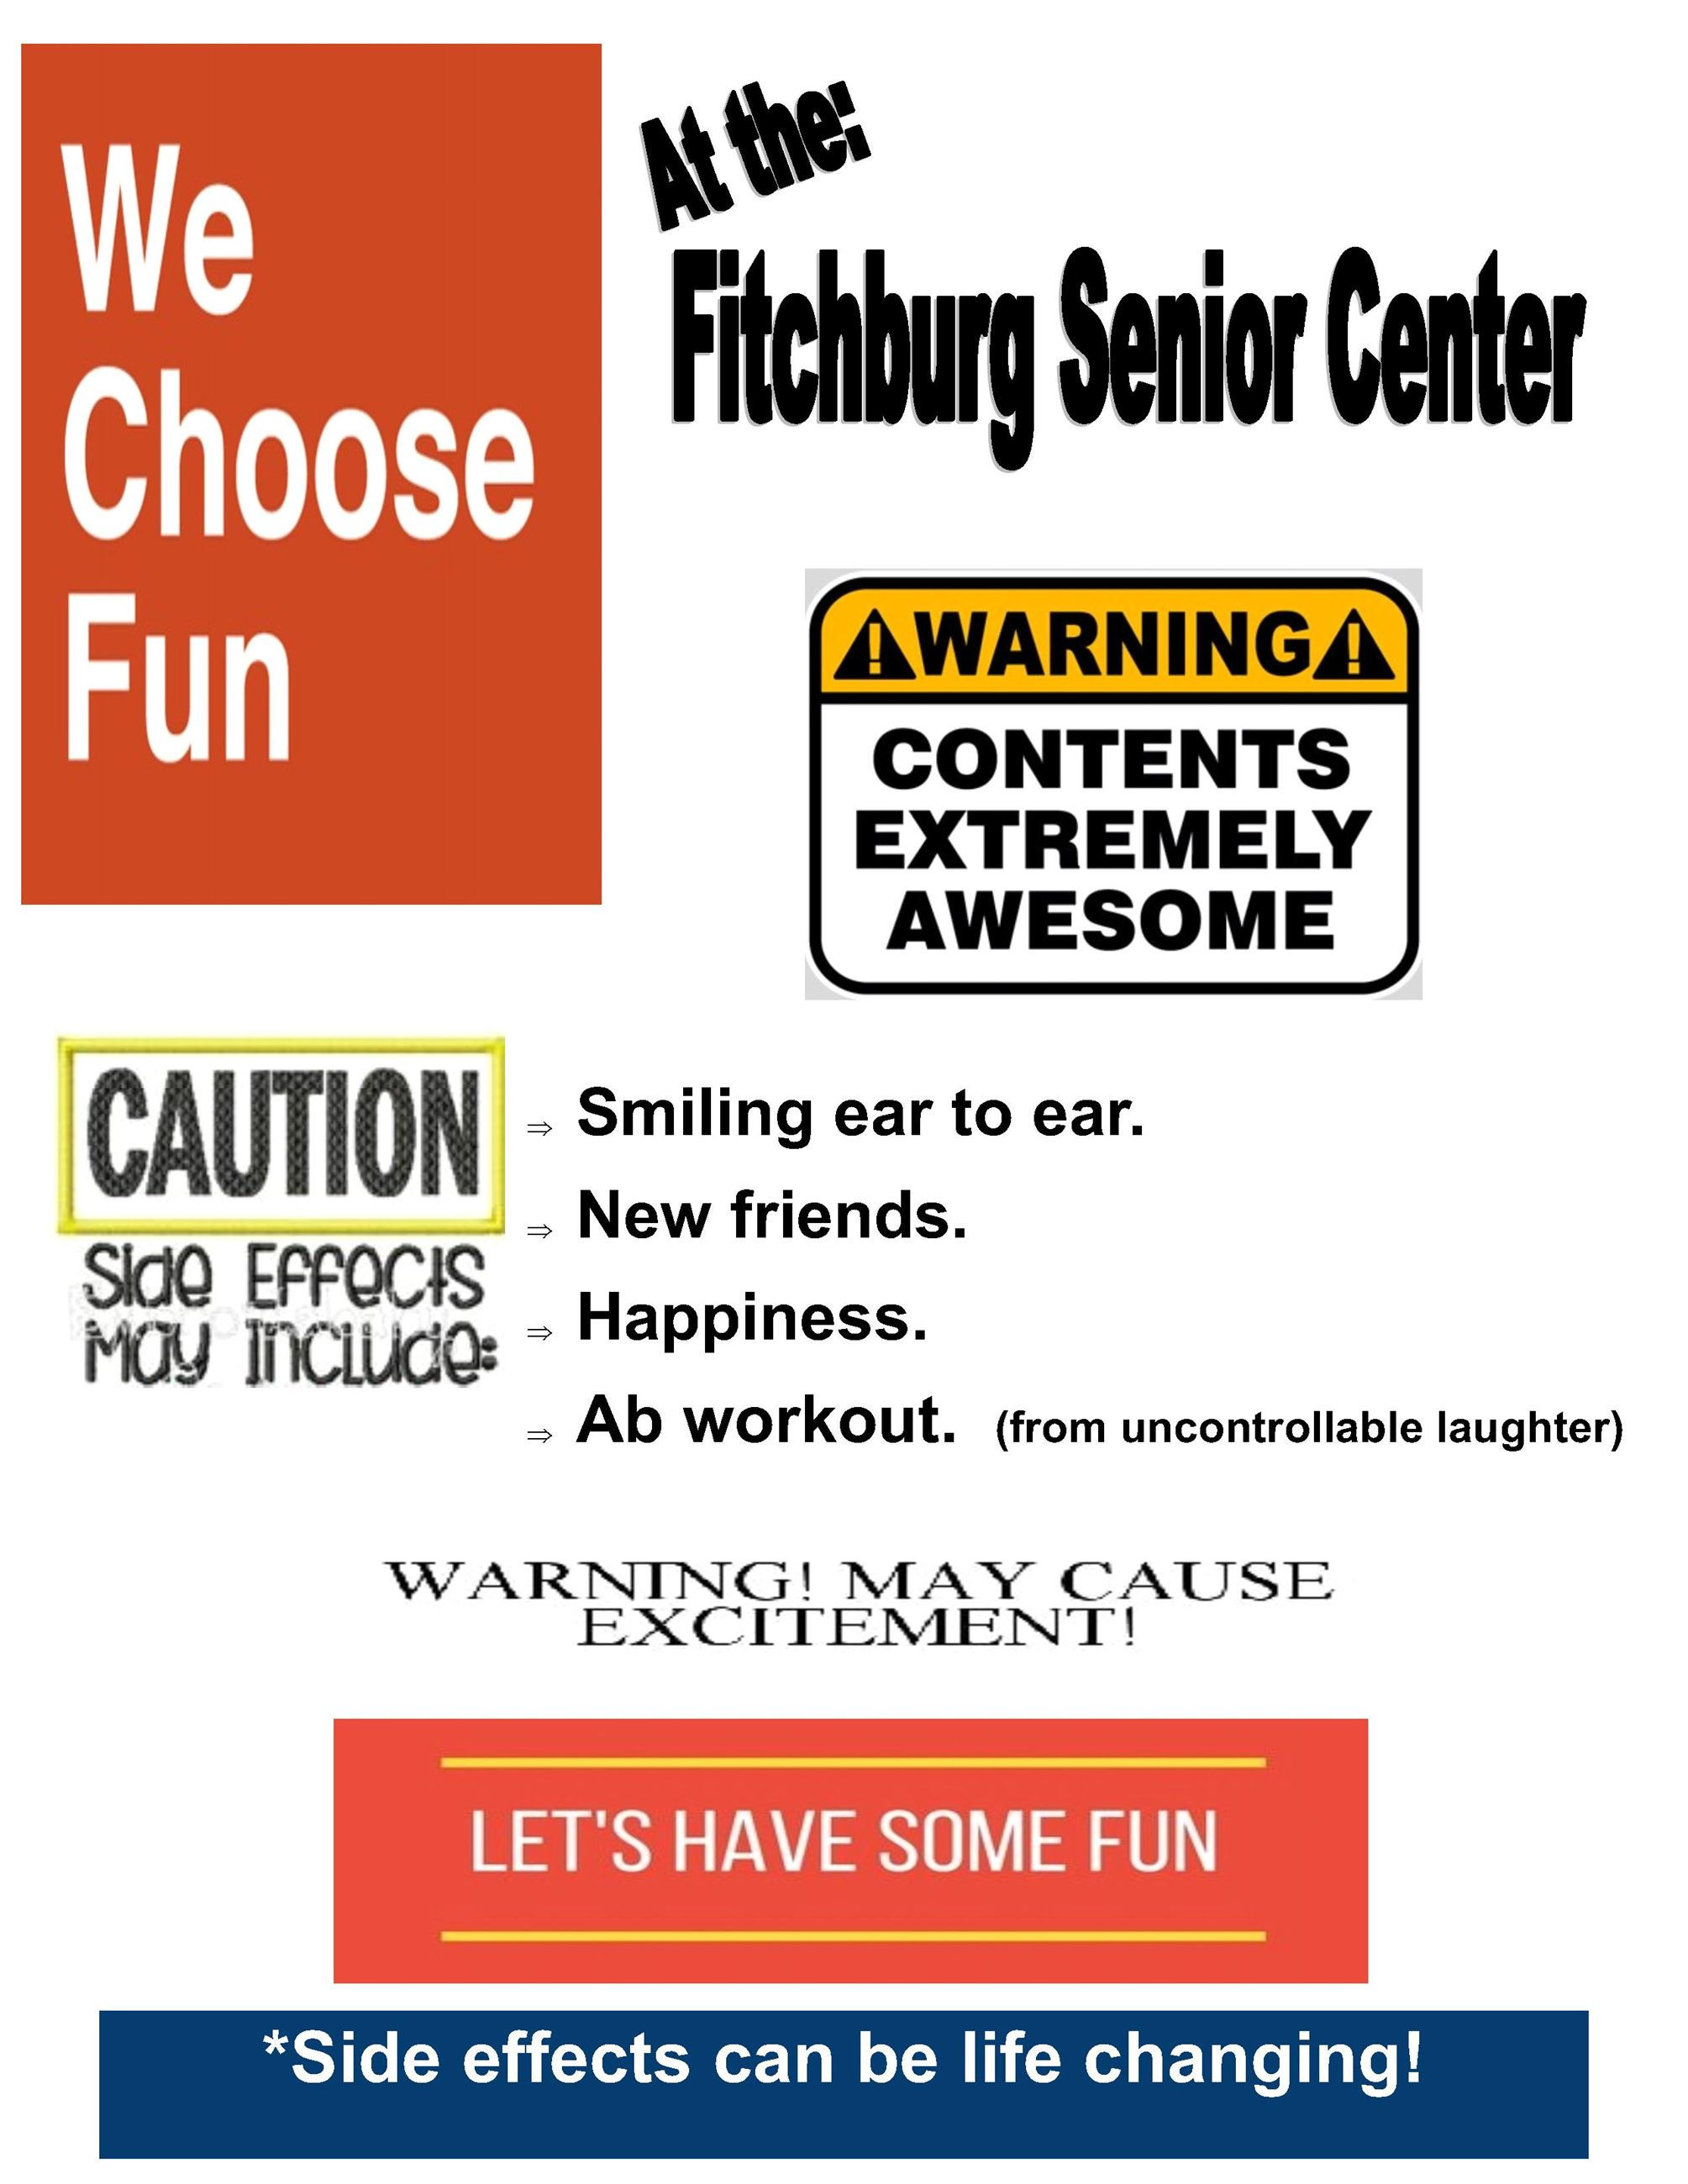 2019 ENTER AT YOUR OWN RISK SENIOR CENTER